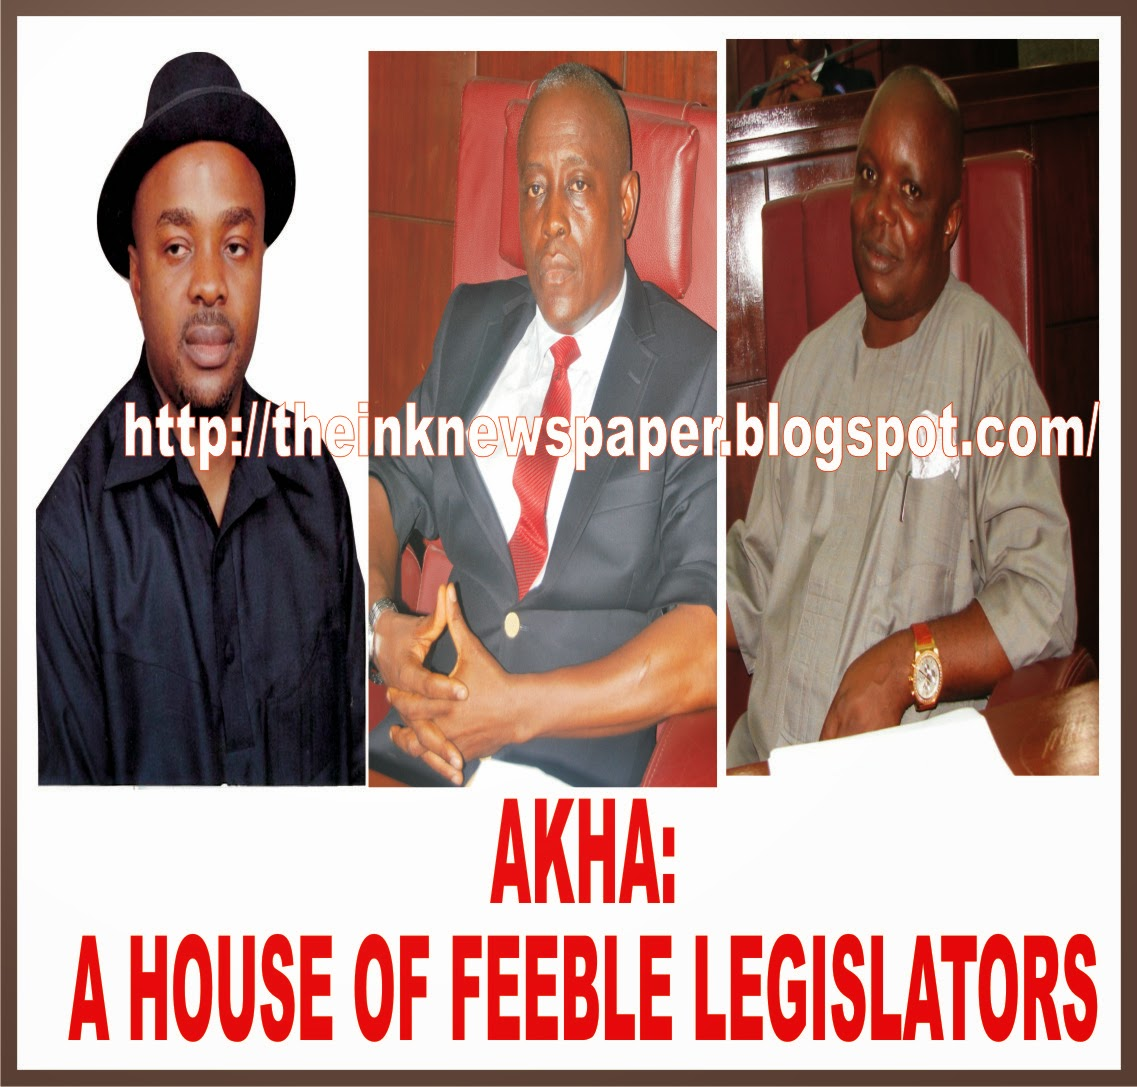 AKHA: A house of feeble legislators